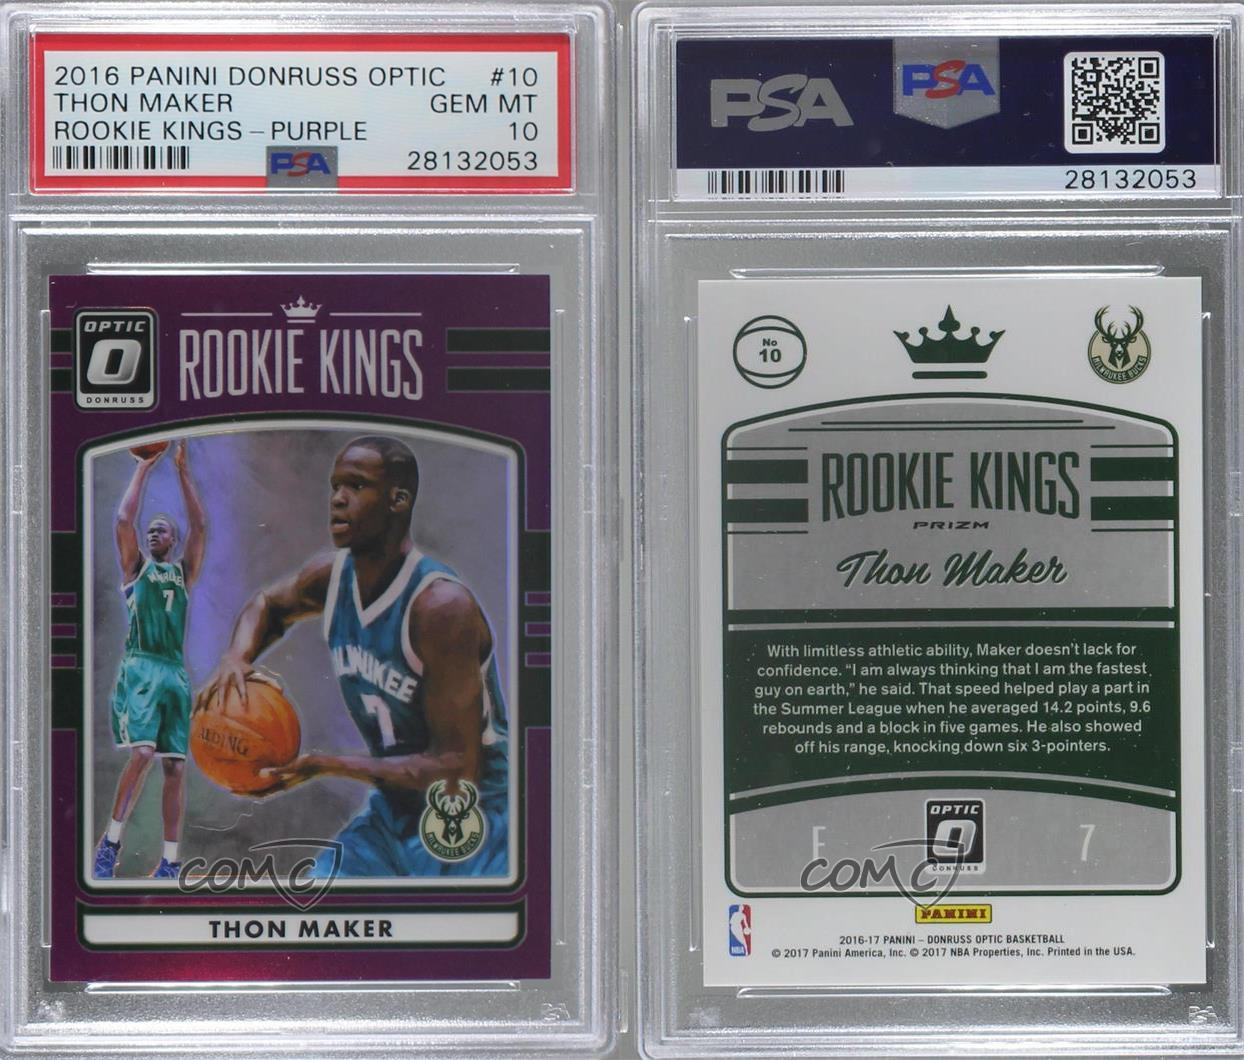 2016-17 Panini Donruss Optic Rookie Kings Purple #10 Thon